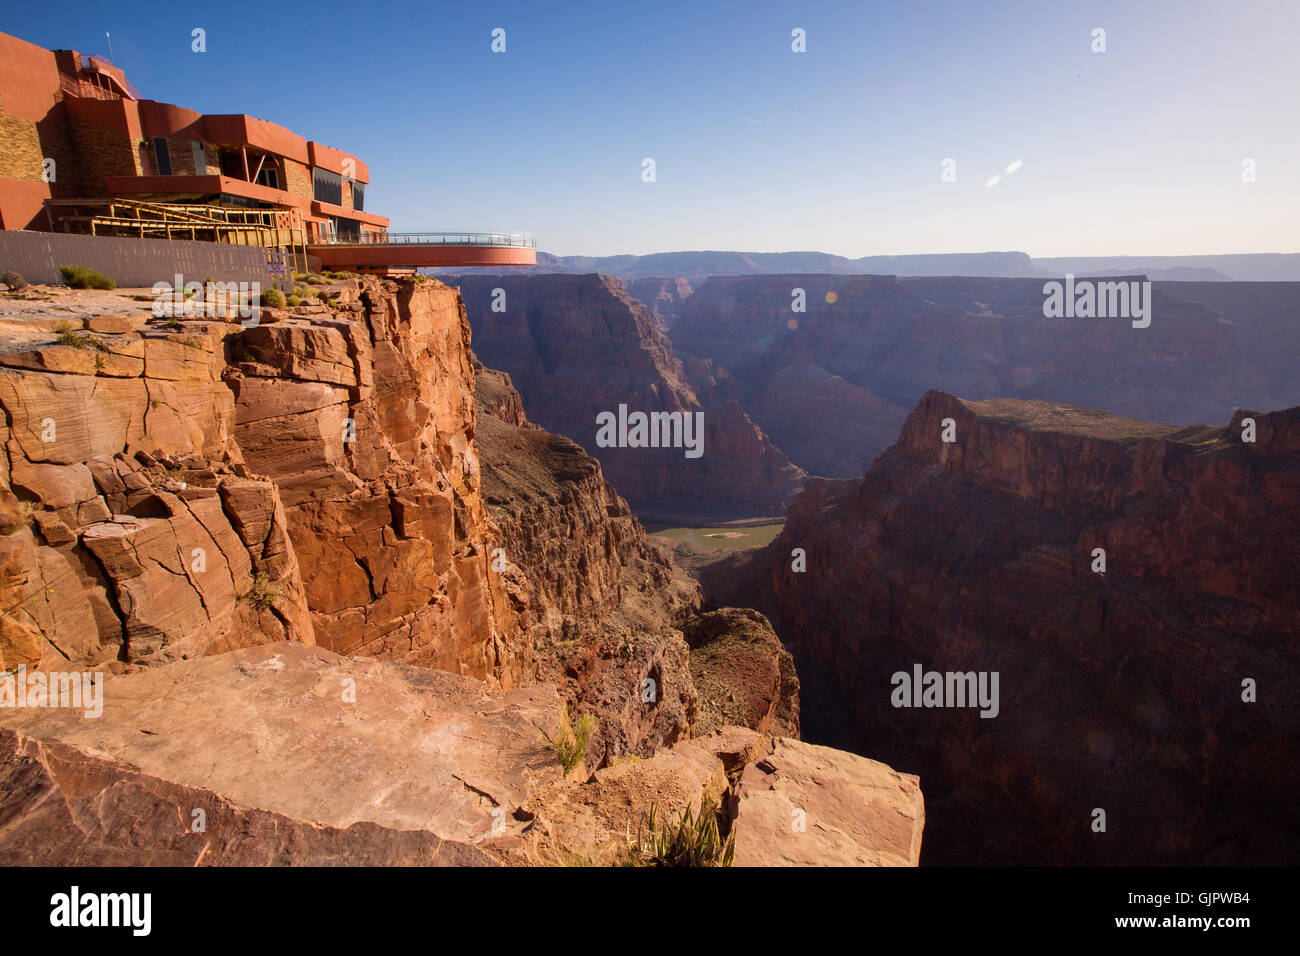 SkyWalk, Grand Canyon. United States of America - Stock Image